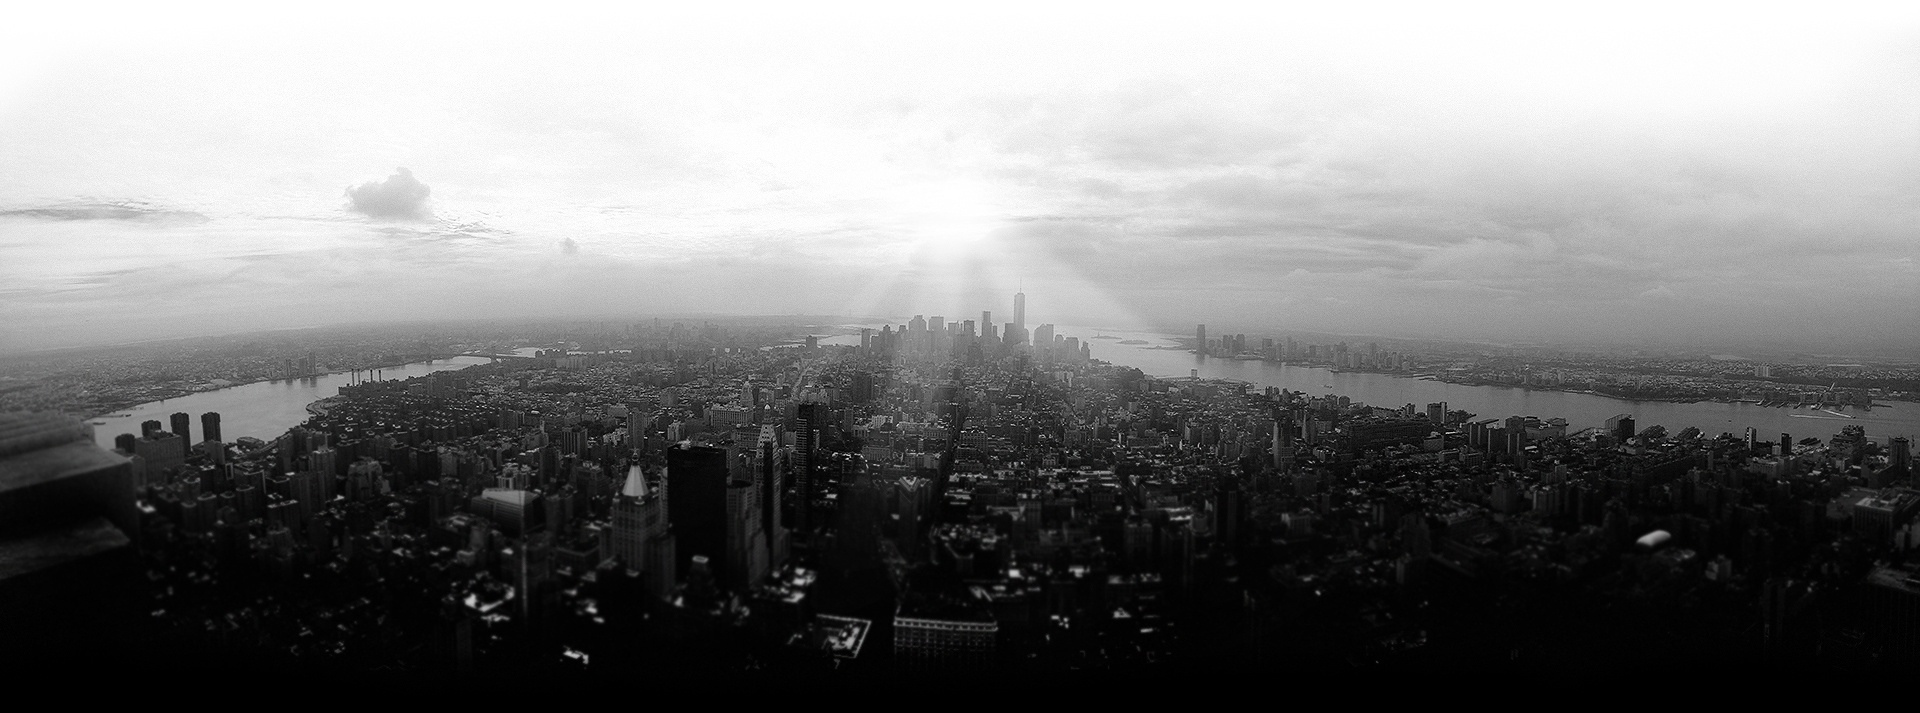 black and white NYC skyline buildings